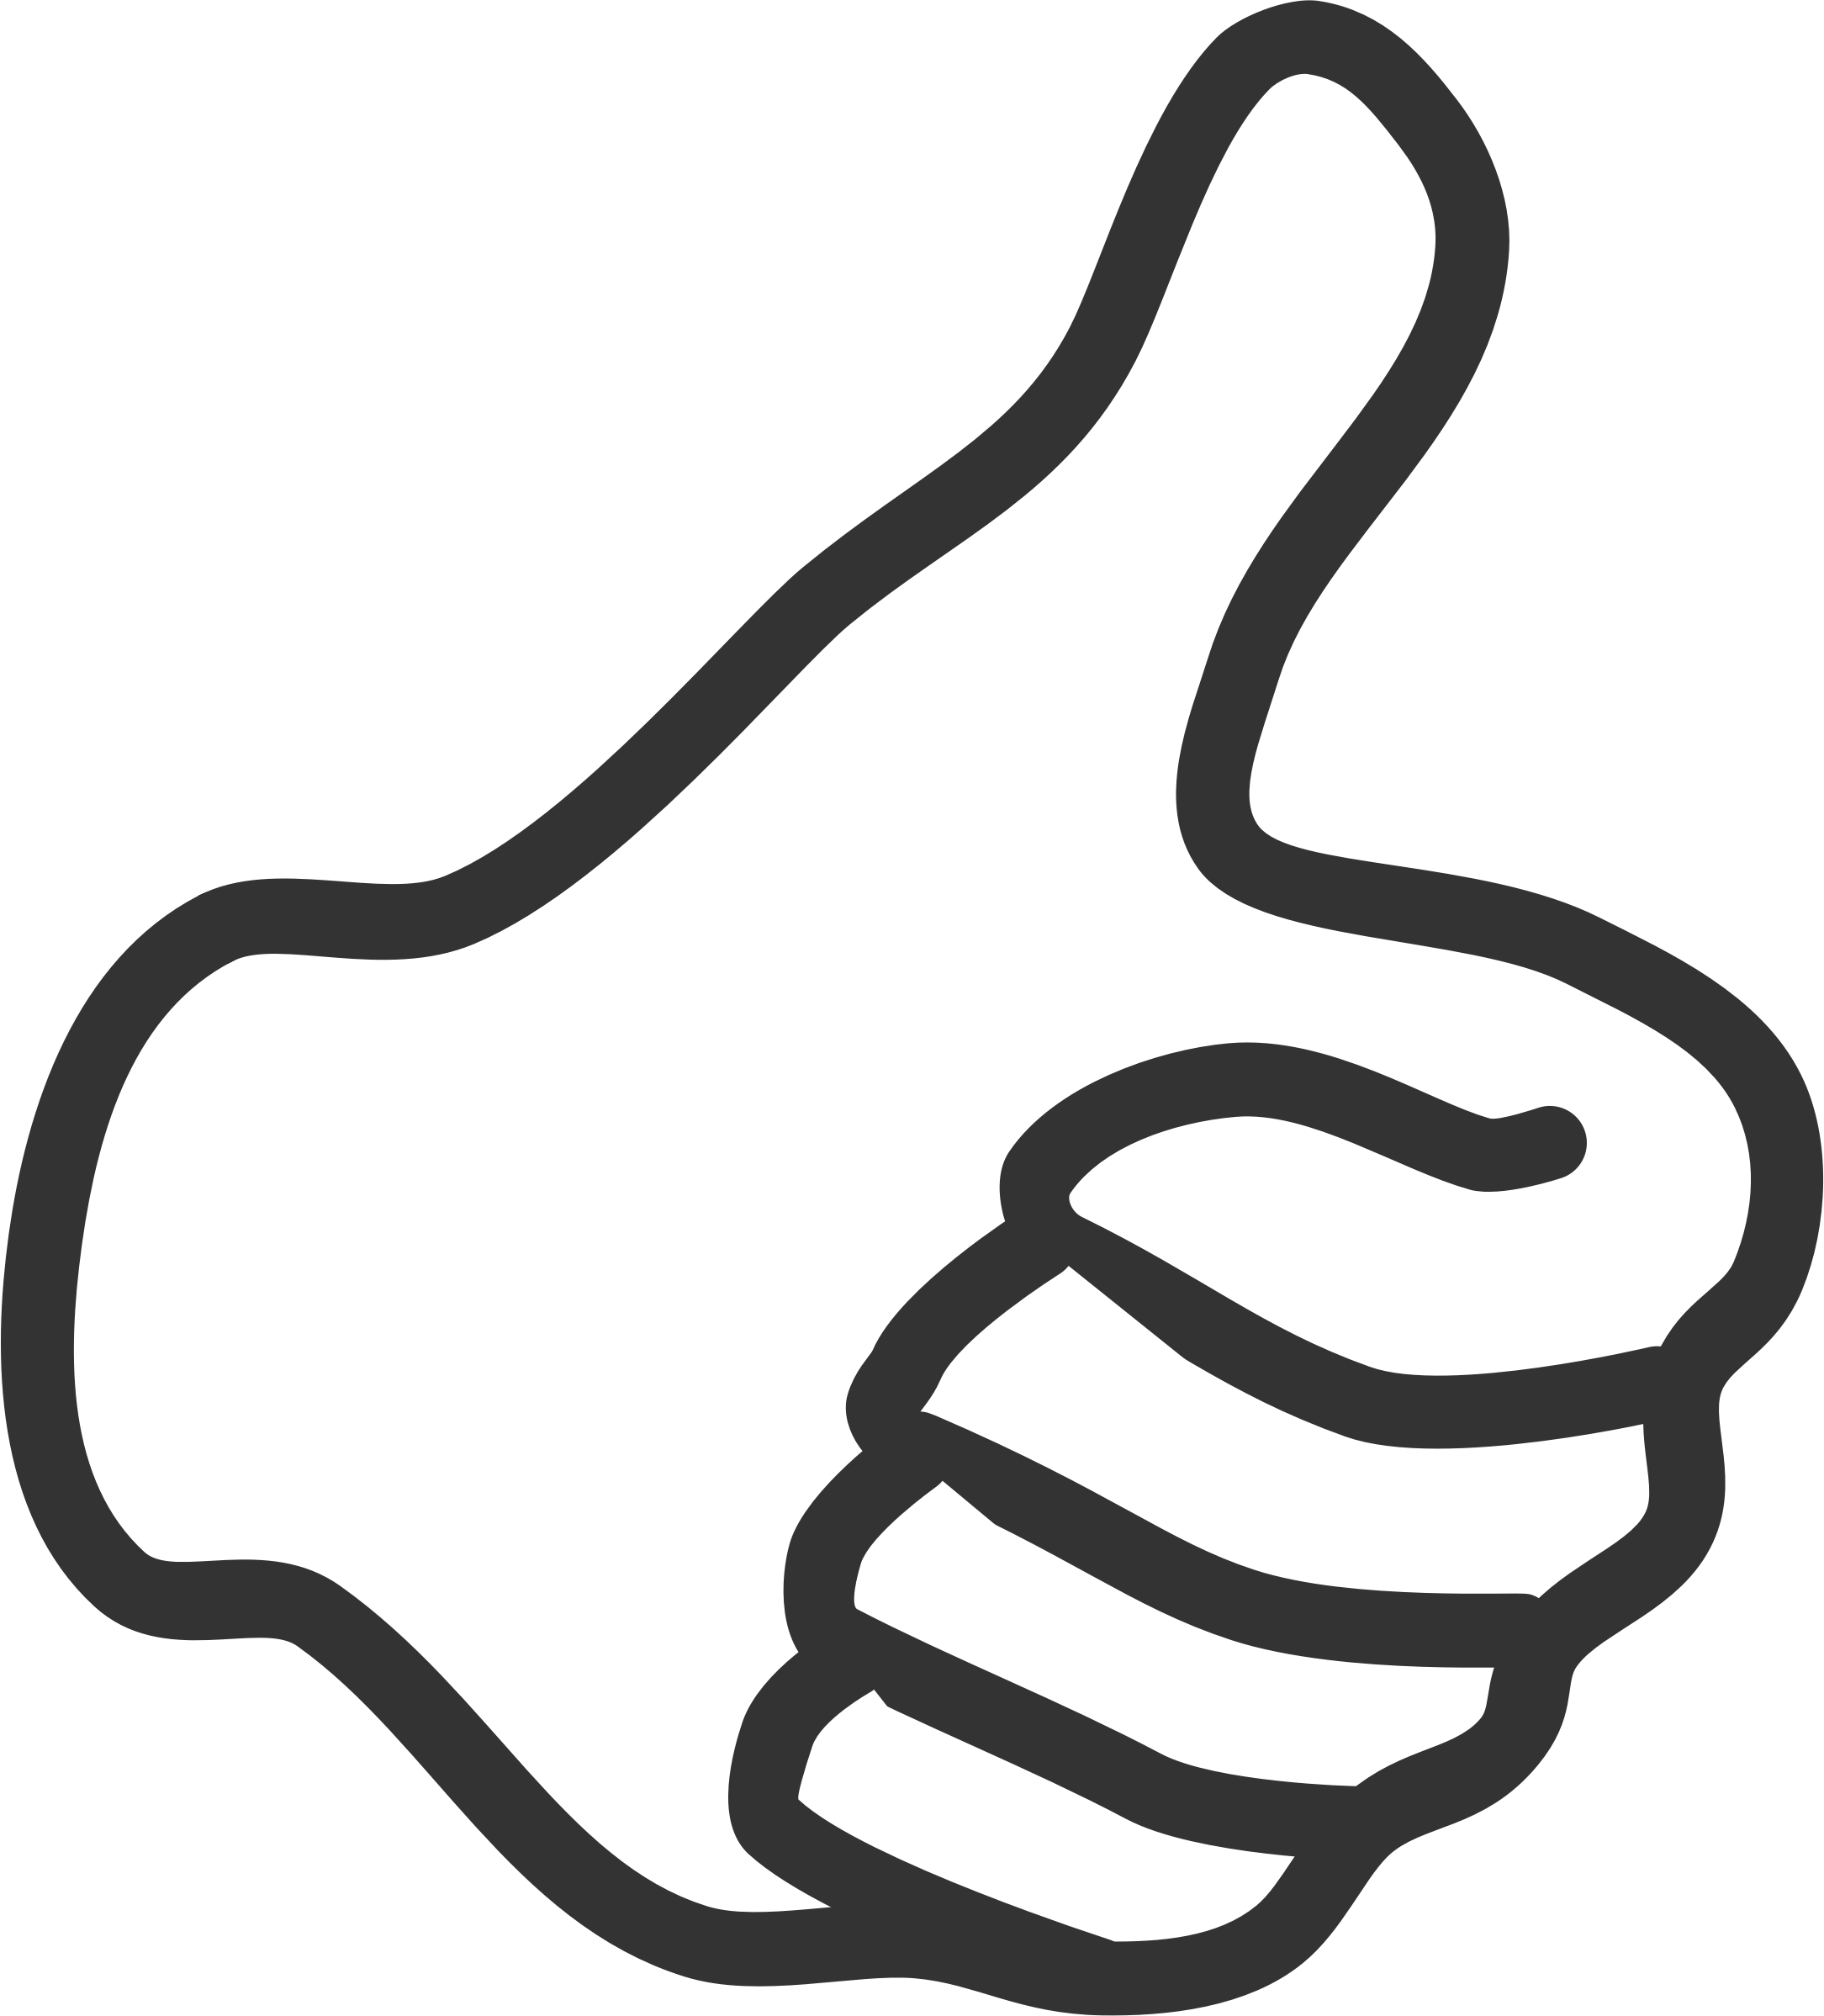 Clipart - Thumb up - white - PNG Jempol